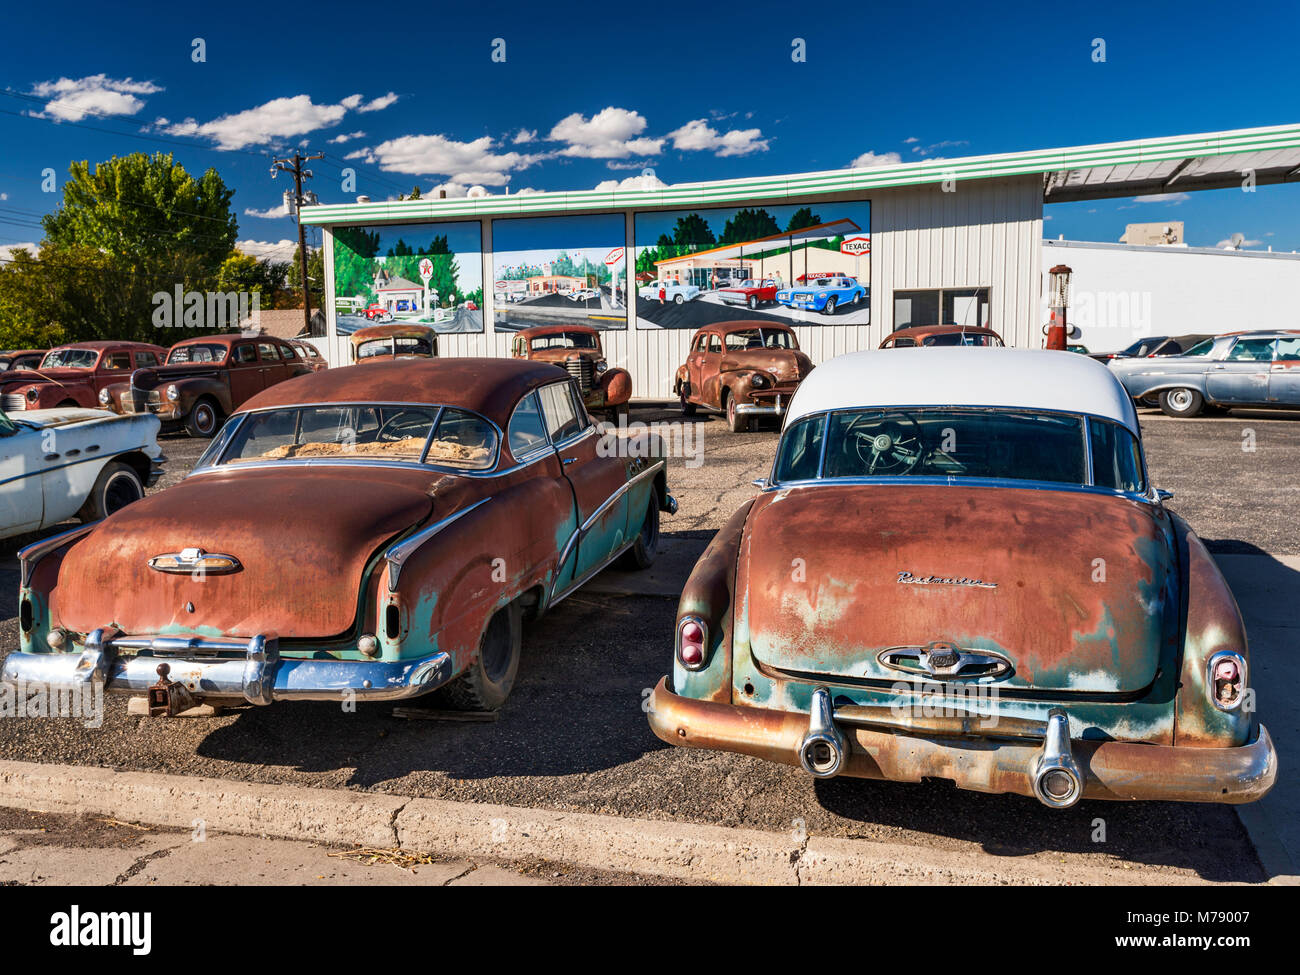 Old Cars For Sale Stock Photos & Old Cars For Sale Stock Images ...